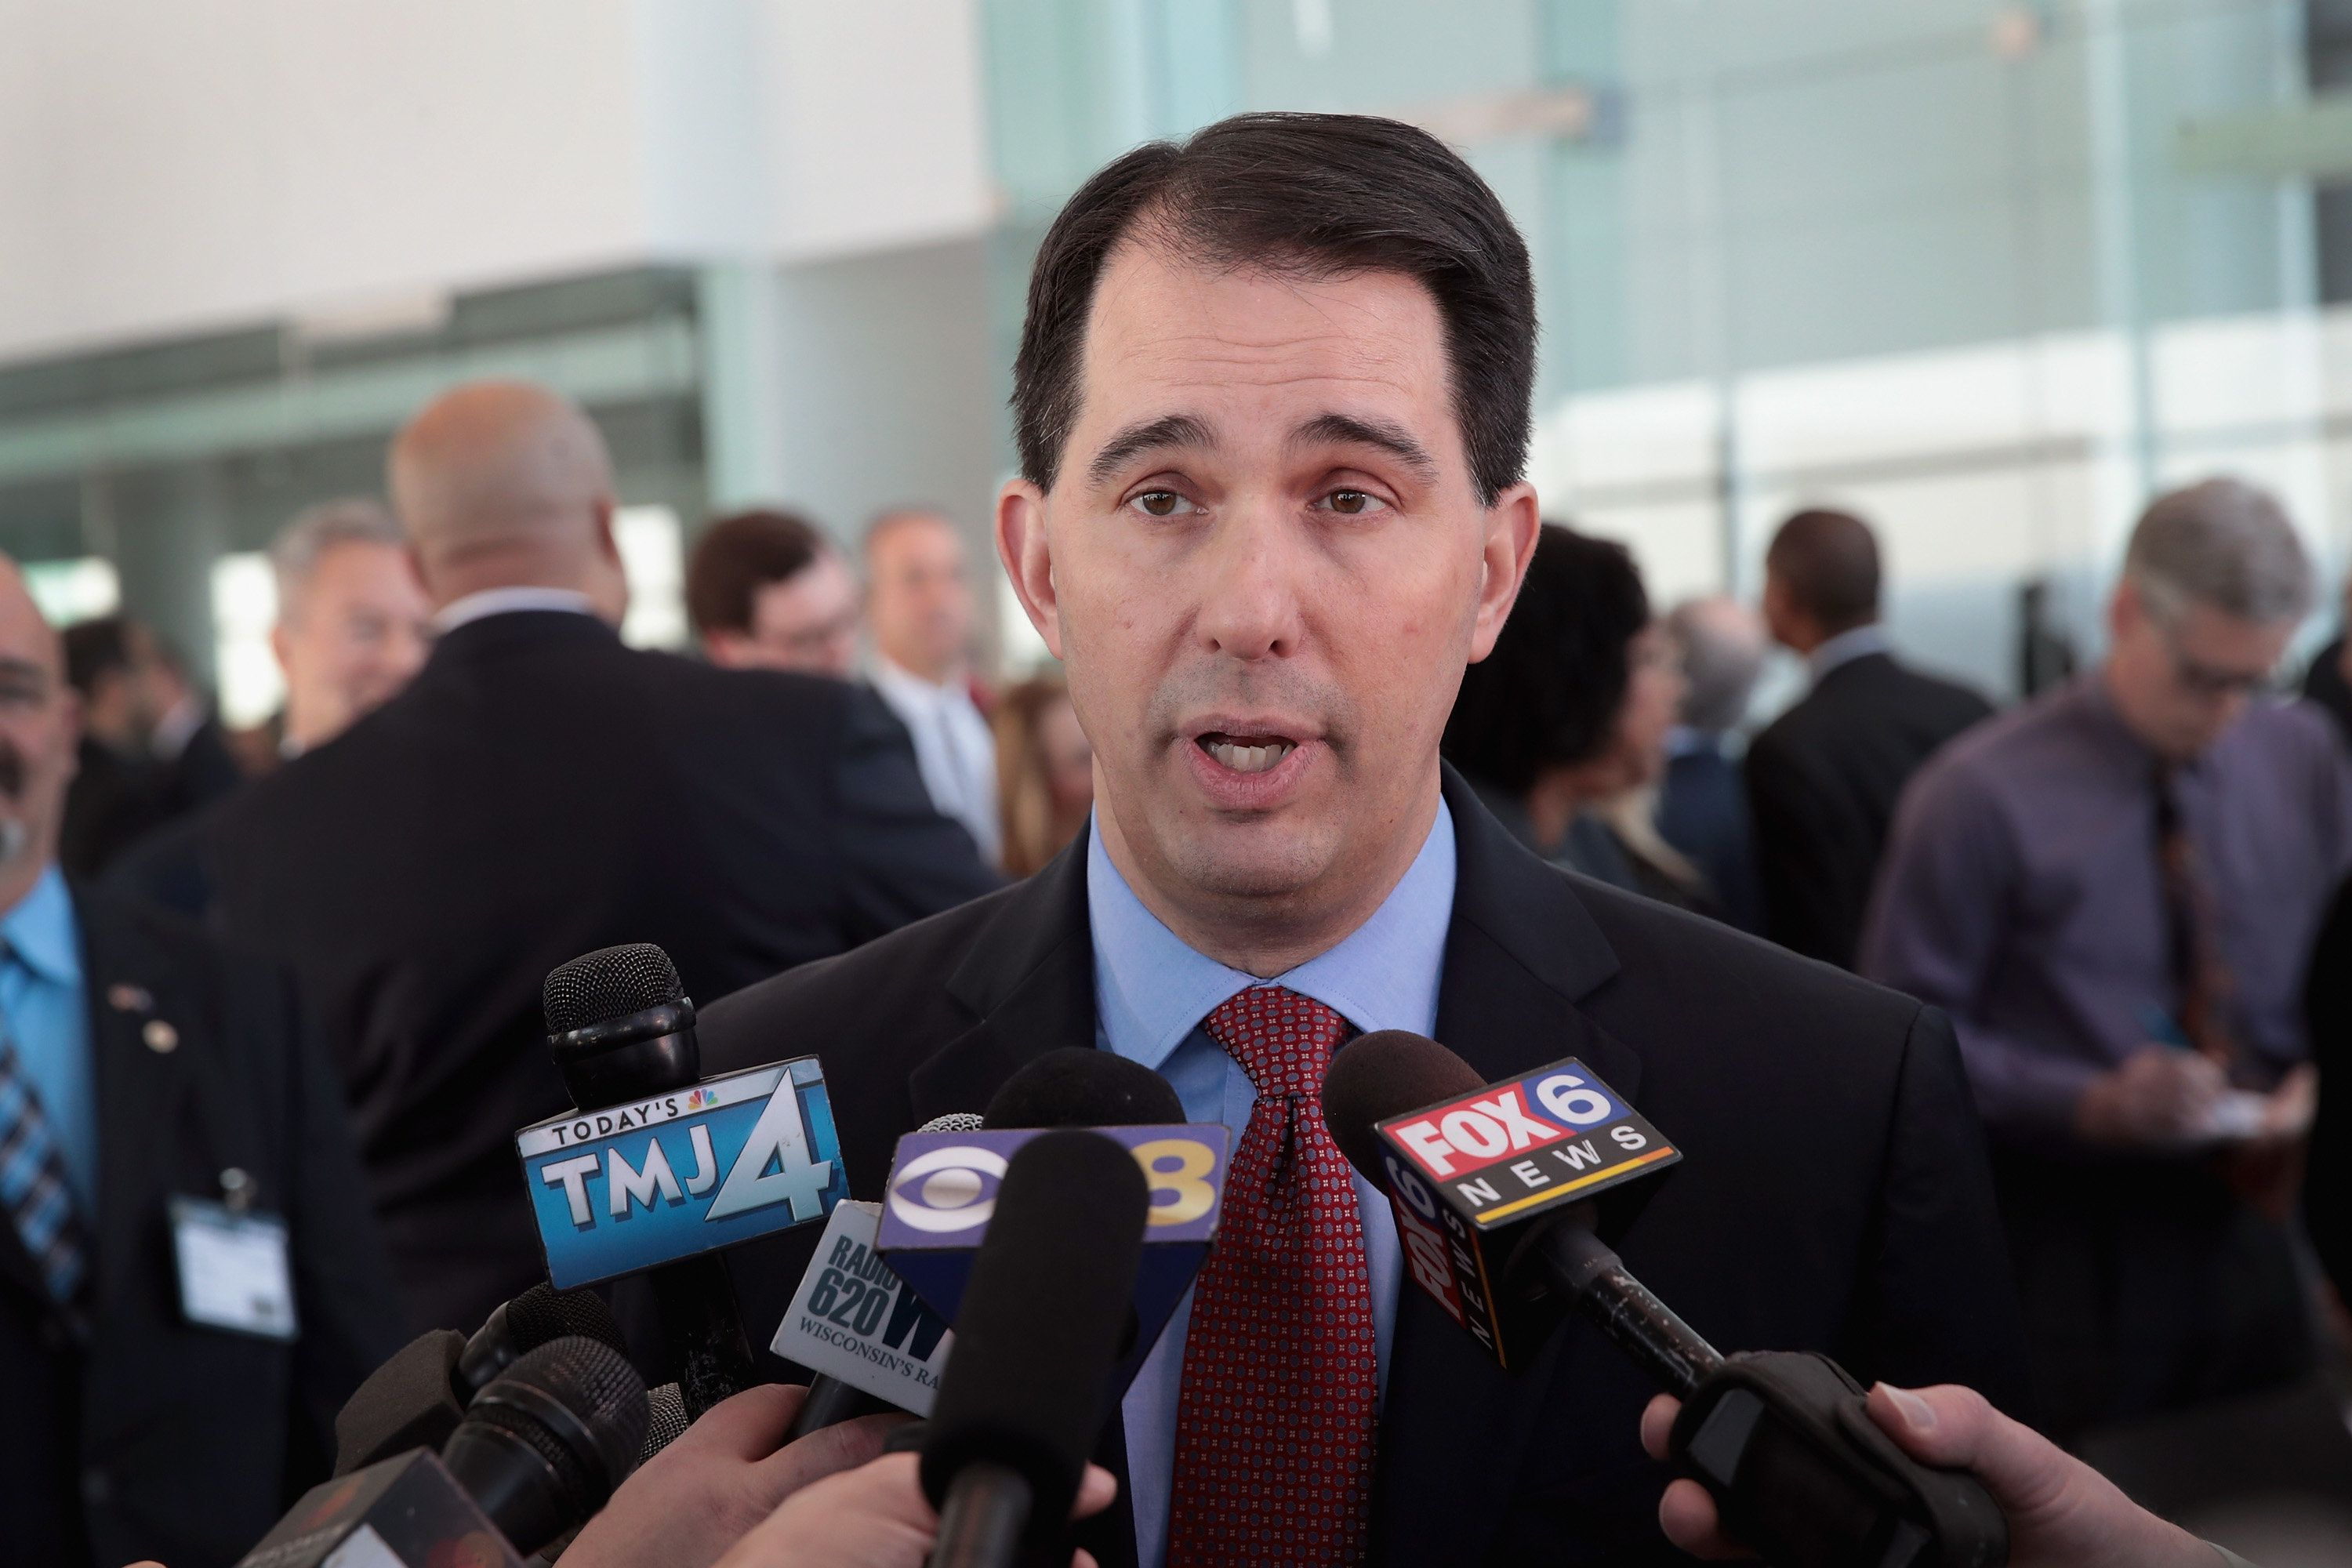 MILWAUKEE, WI - FEBRUARY 06:  Wisconsin Governor Scott Walker speaks to the press at an event held to announce Foxconn's plan to purchase an office building from Northwestern Mutual on February 6, 2018 in Milwaukee, Wisconsin. The building will be Foxconn's Wisconsin headquarters. Foxconn, which makes LCD screen panels, is building a $10 billion campus in Wisconsin.  (Photo by Scott Olson/Getty Images)